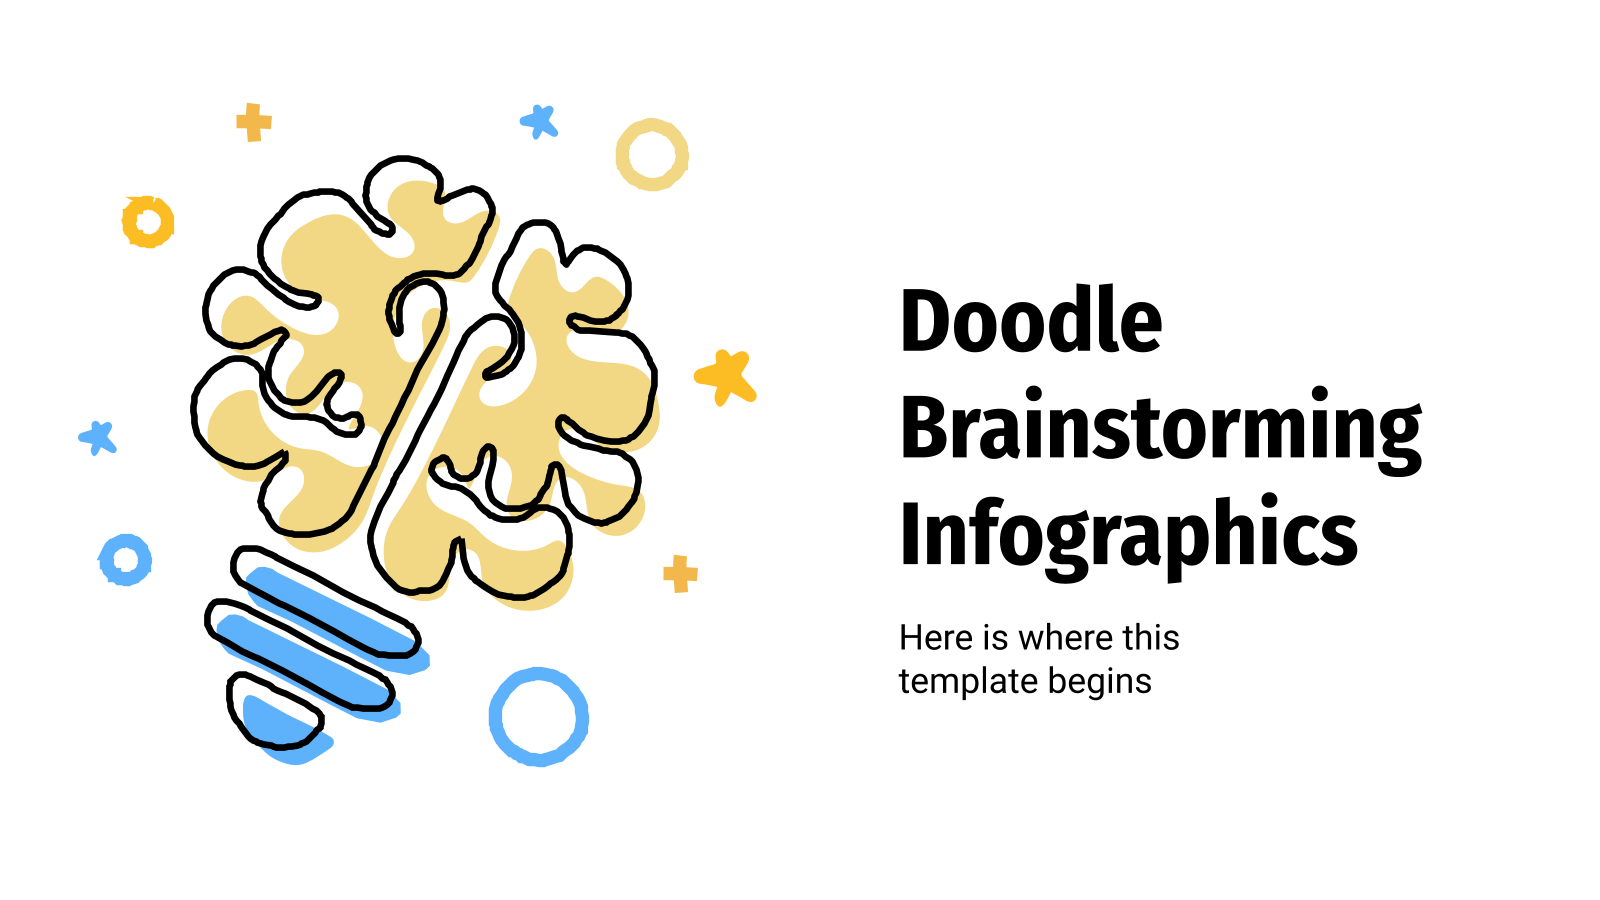 Doodle Brainstorming Infographics presentation template